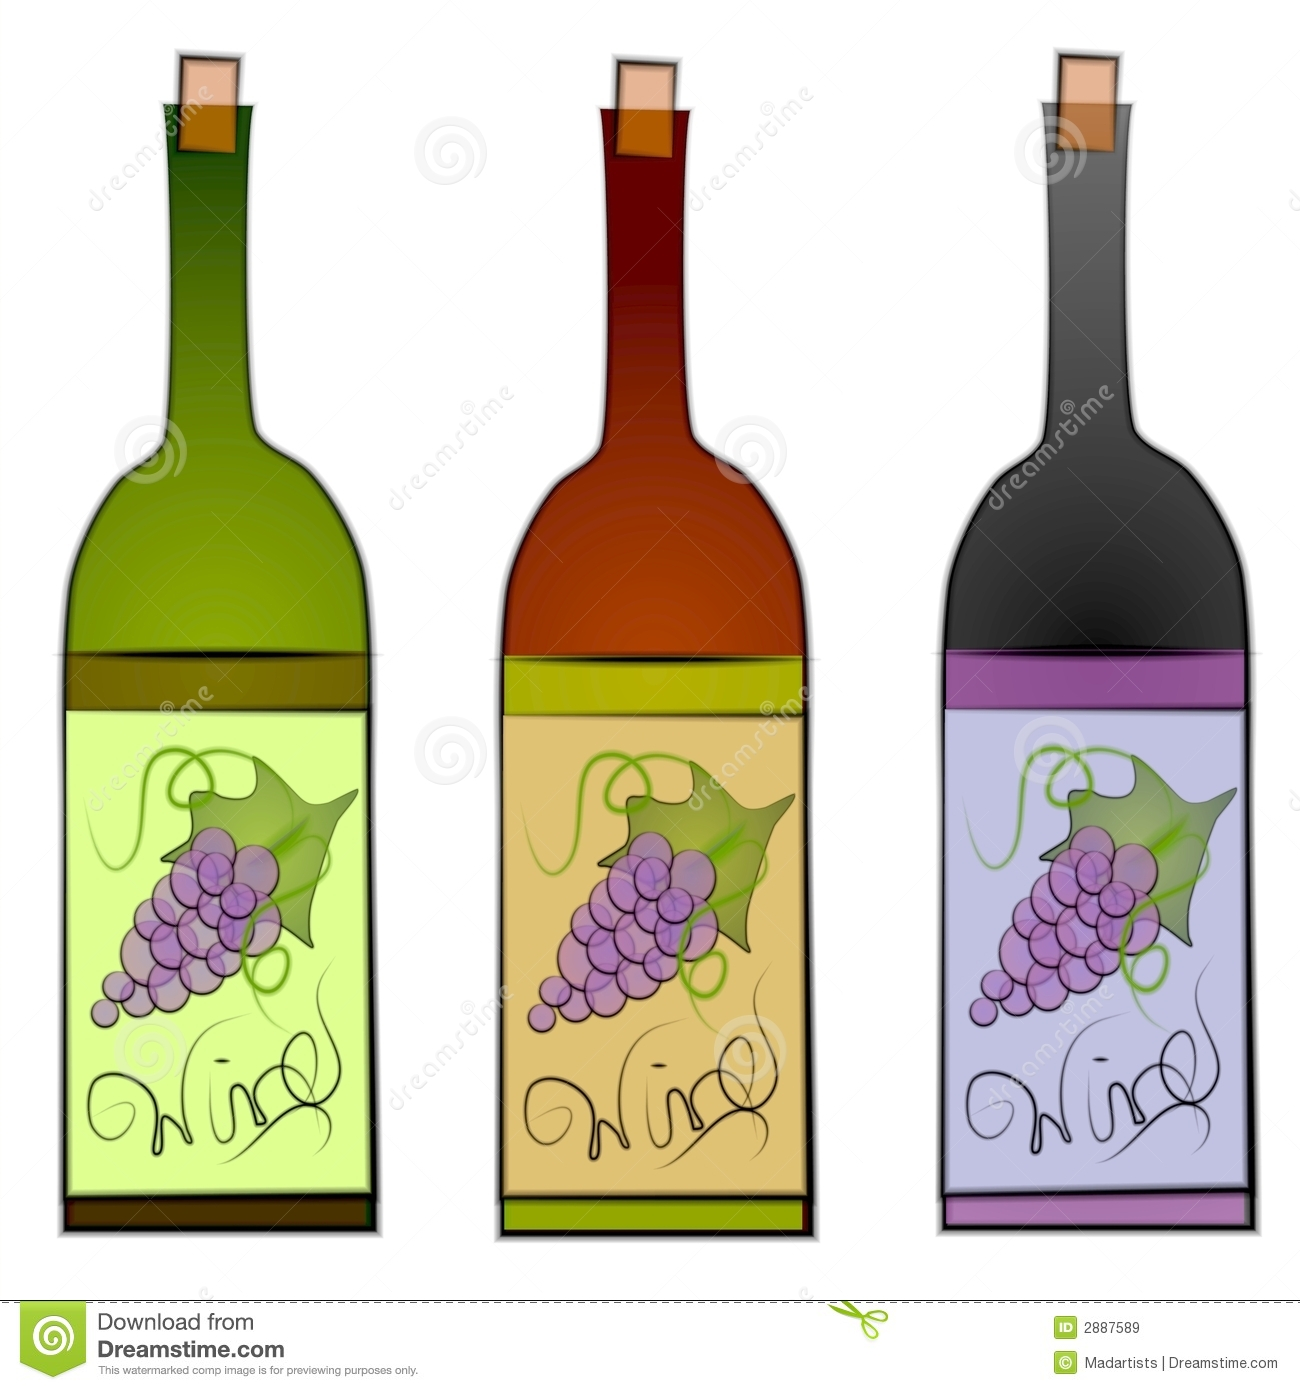 Clip Art Illustration Of A Co - Wine Bottle Clipart